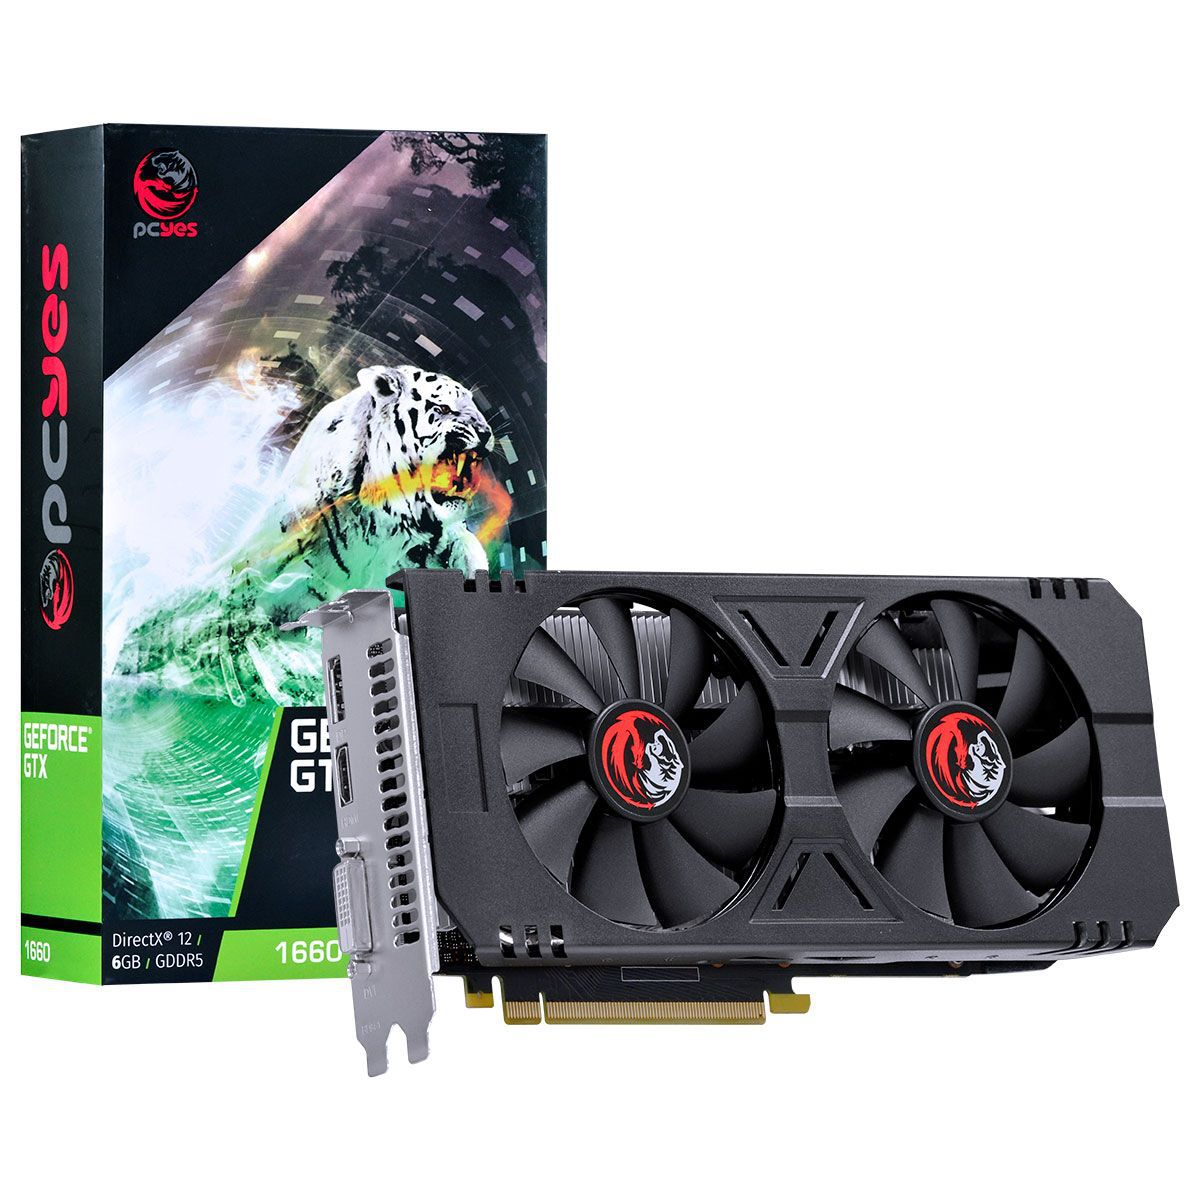 Placa de Vídeo Geforce GTX 1660 6GB GDDR5 192 Bits DUAL-FAN - PA166019206G5 - Pcyes